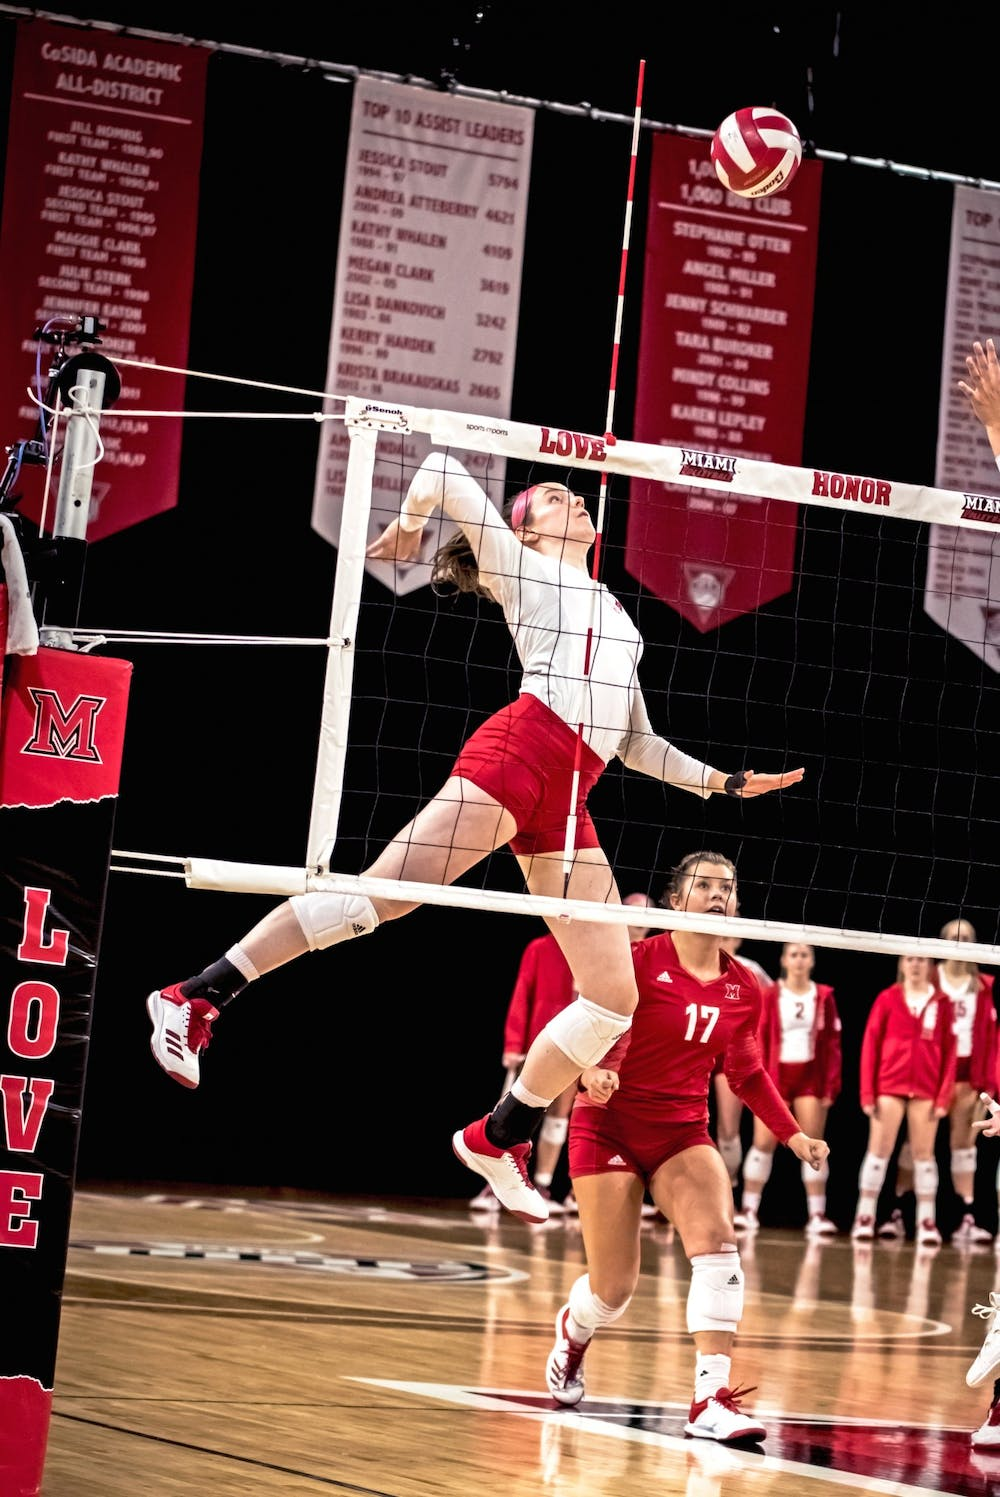 <p>Senior libero Abigail Huser (pictured, in red) recorded a team-high 38 total digs in Miami&#x27;s weekend series against Western Michigan</p>